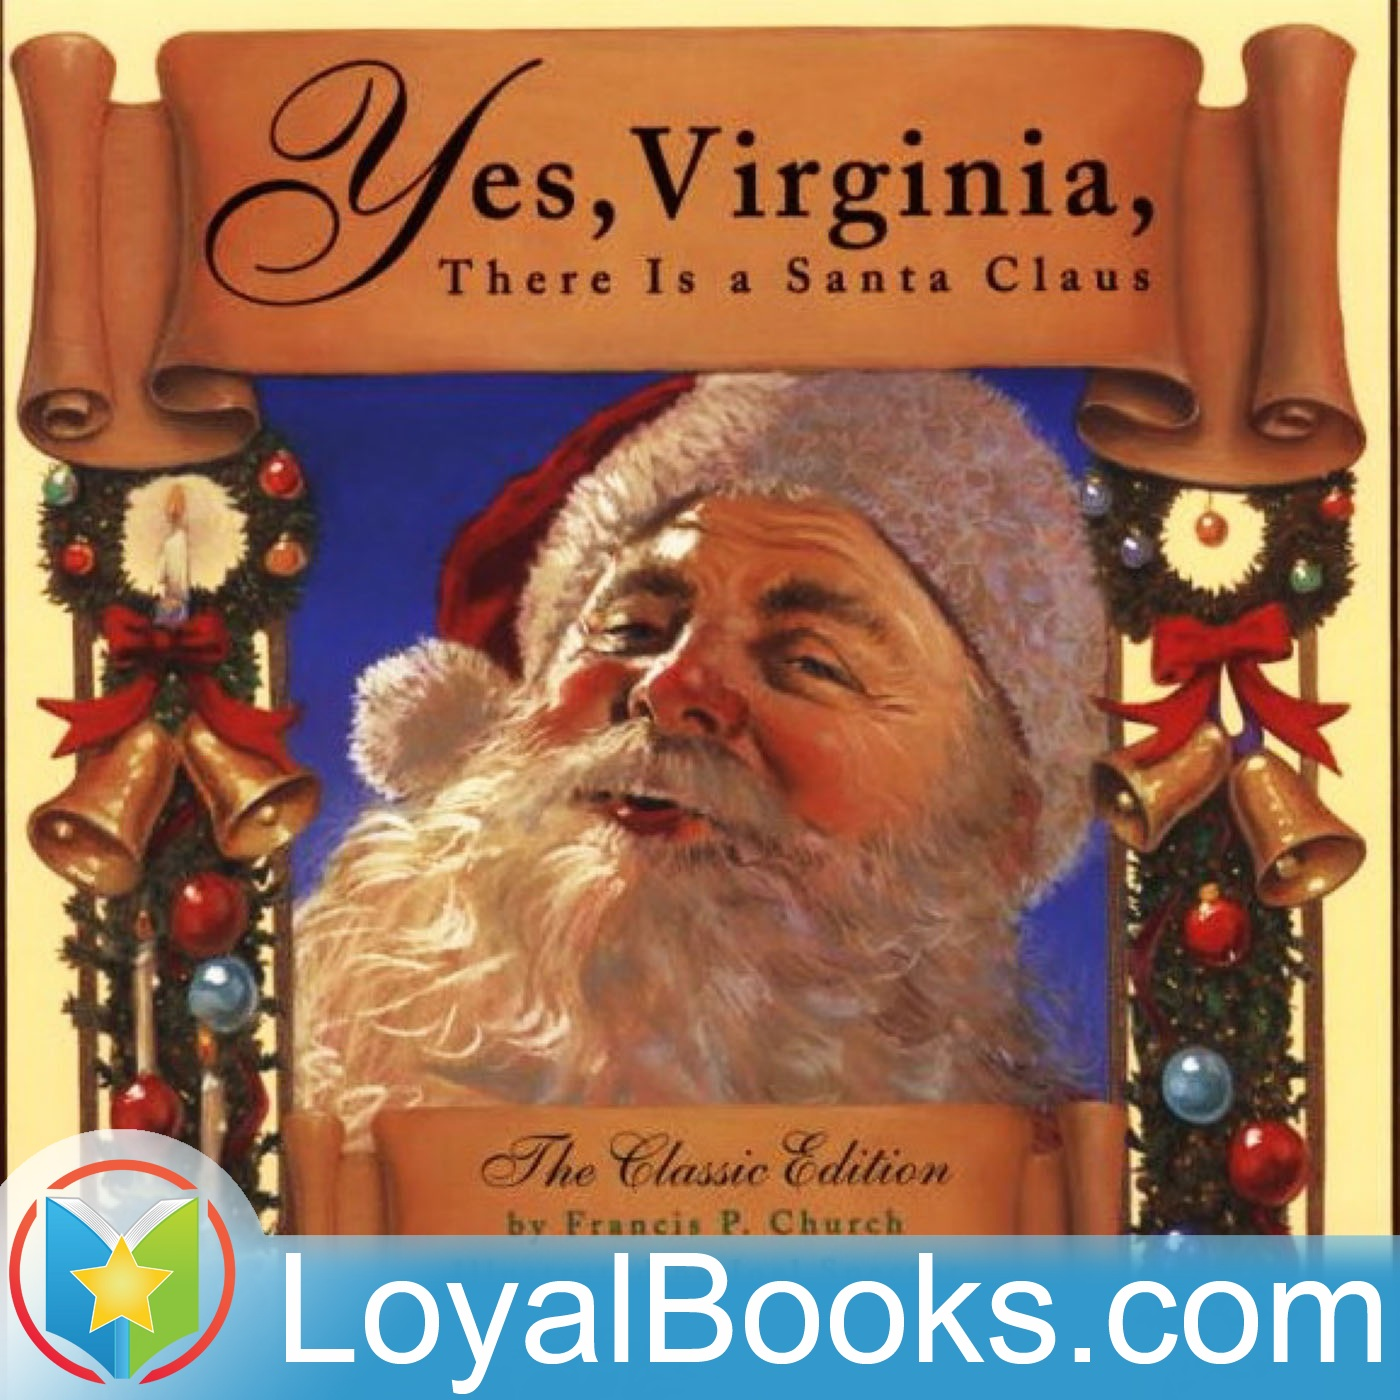 <![CDATA[Yes, Virginia, There Is A Santa Claus by Francis Pharcellus Church]]>